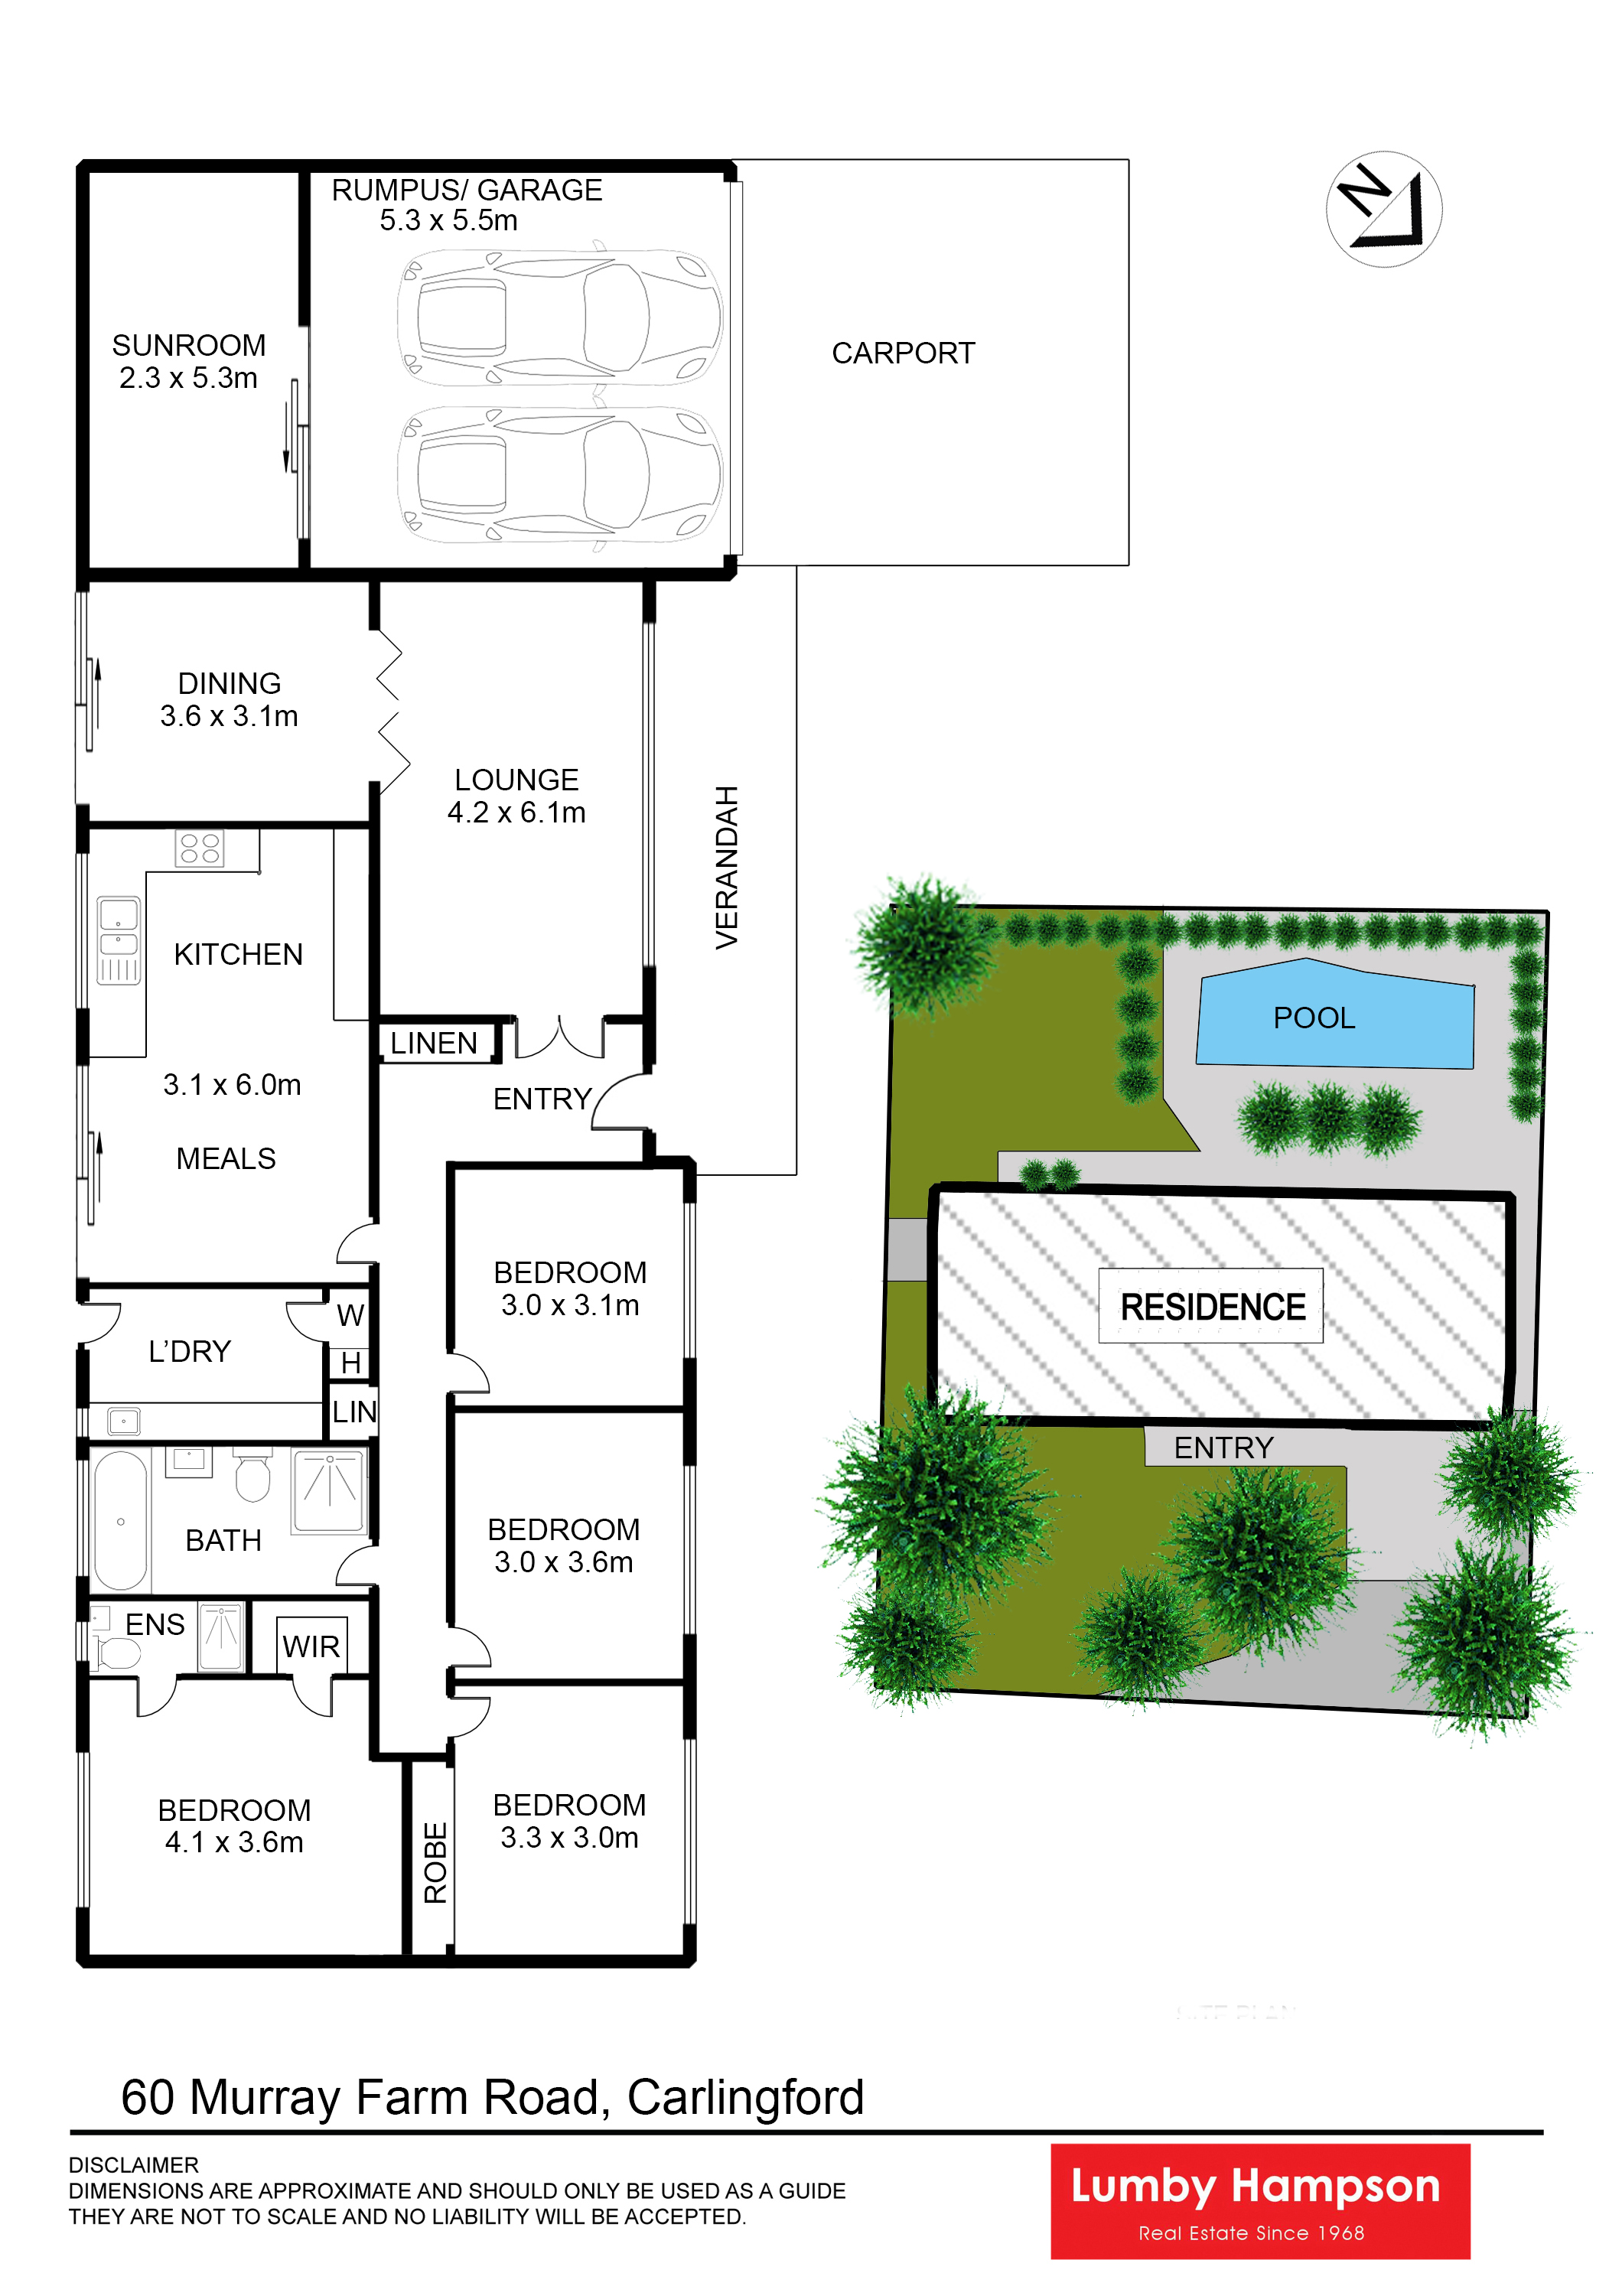 Lumby hampson 60 murray farm road carlingford nsw 2118 for 15 st judes terrace dural